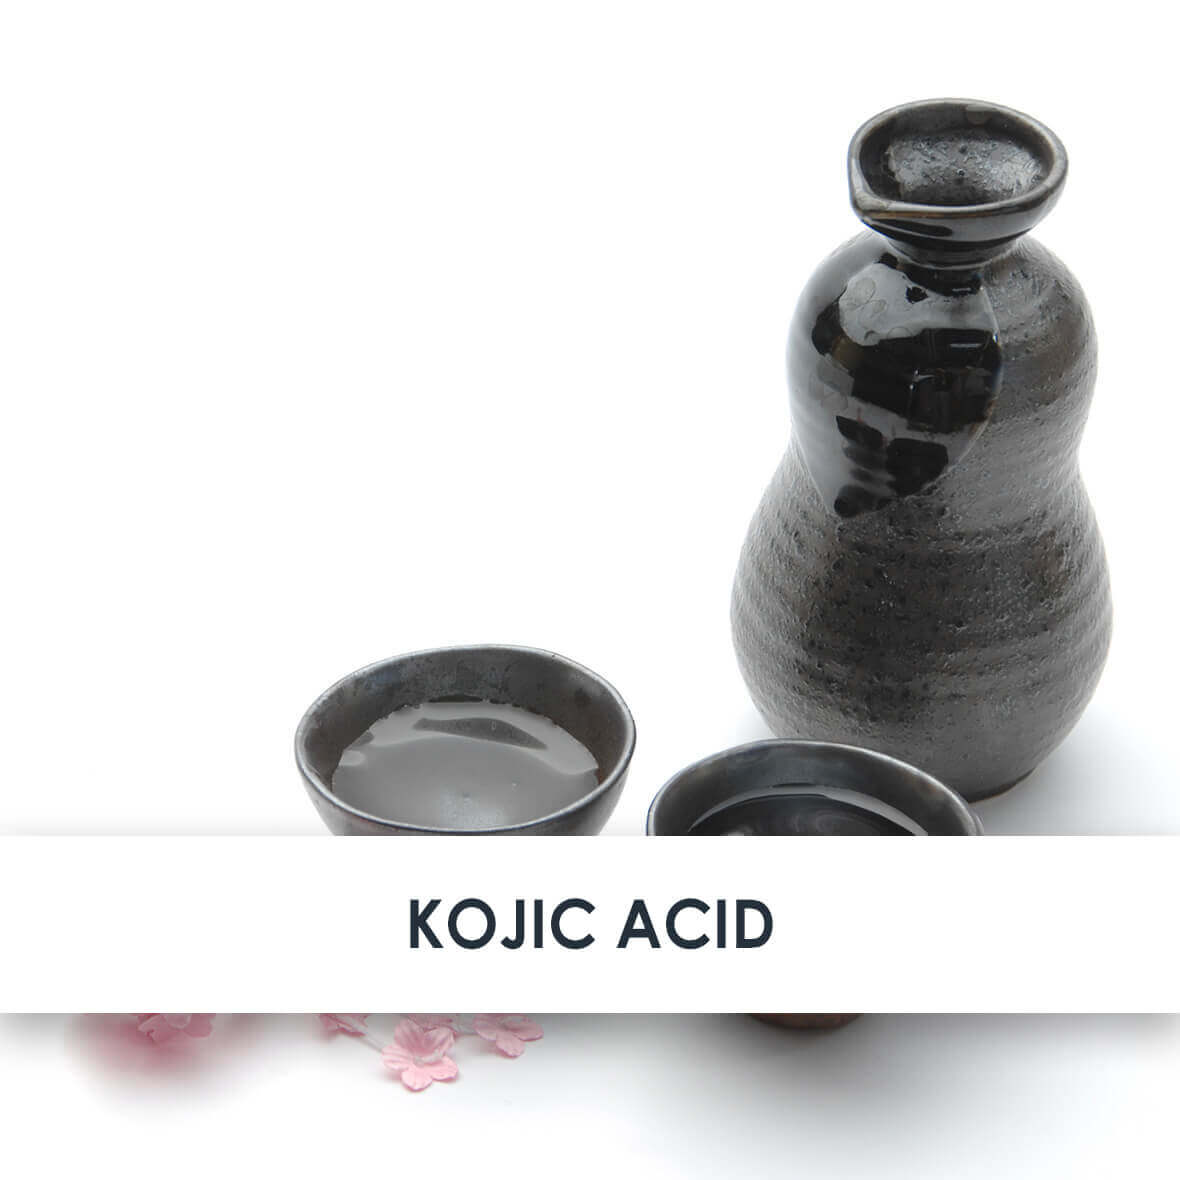 Kojic Acid Skincare Benefits